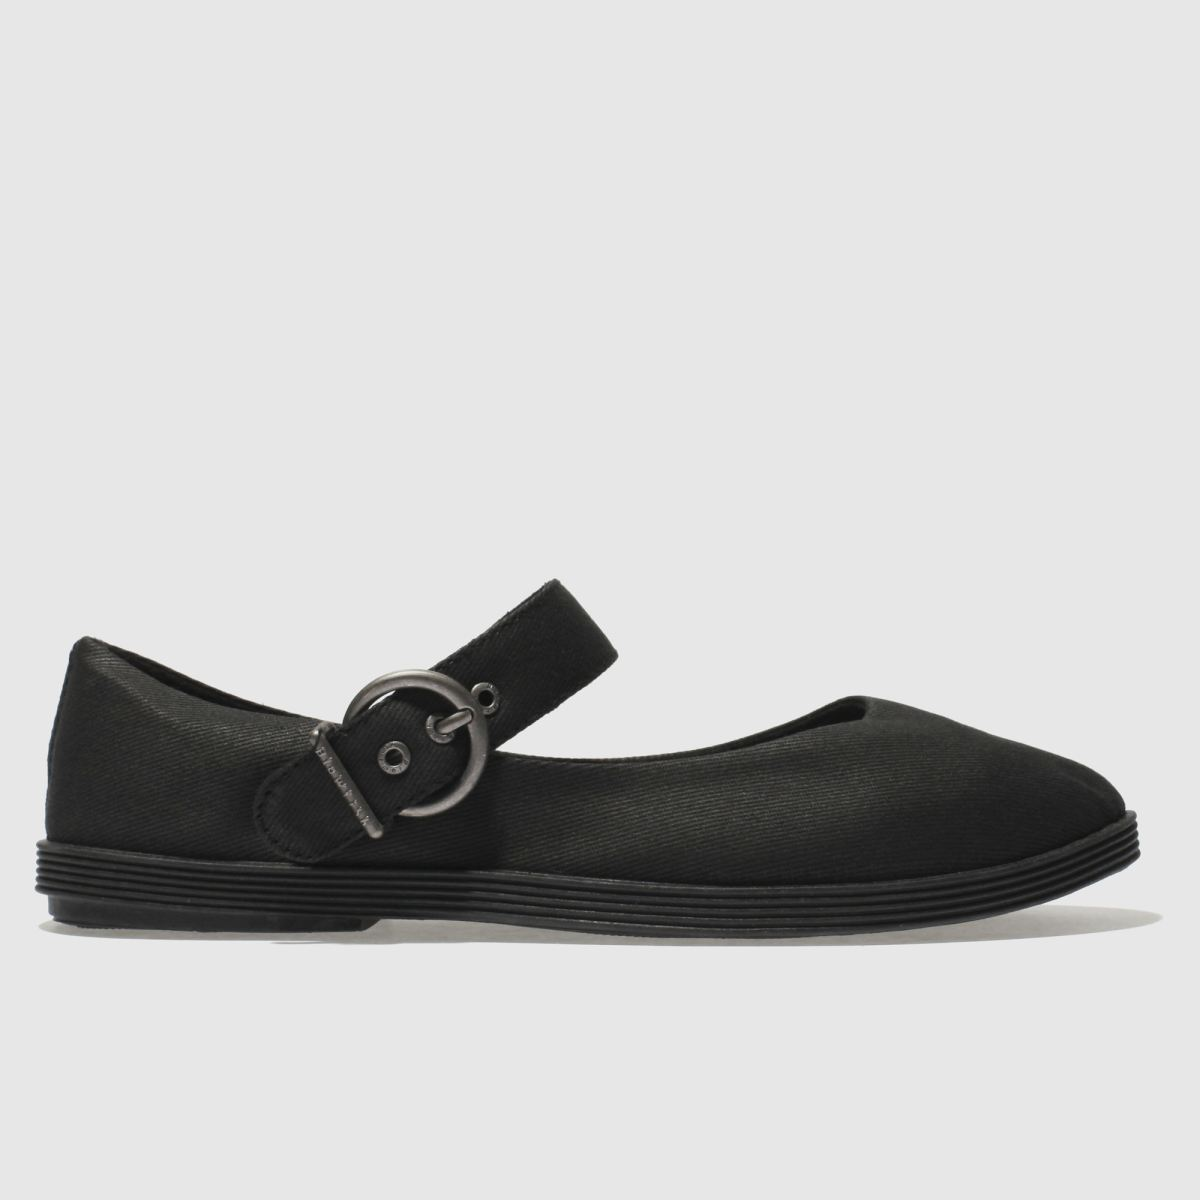 Blowfish Black Getaway Flat Shoes